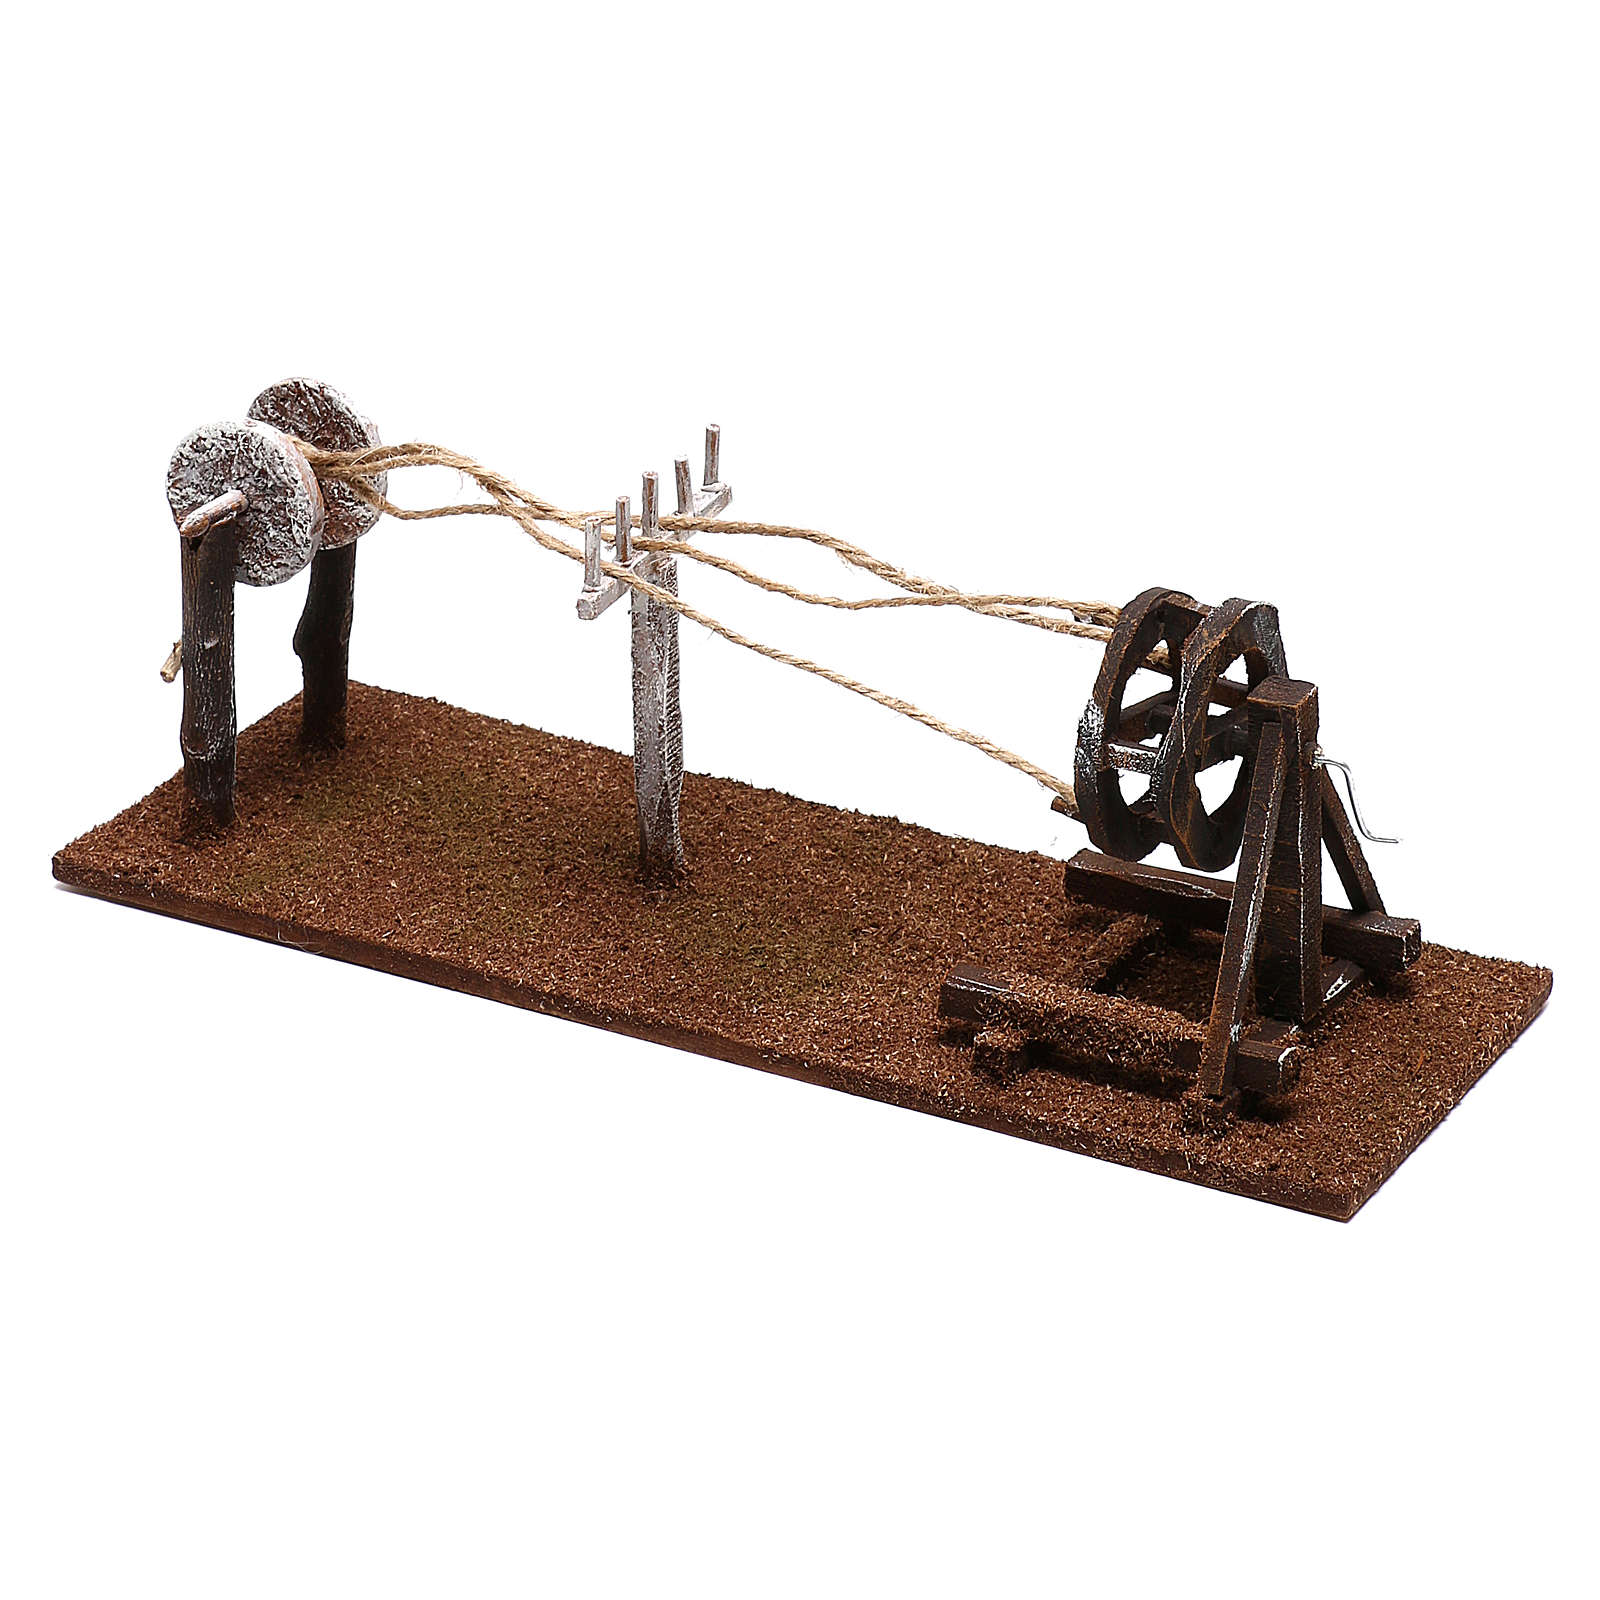 Rope maker equipment Nativity scenes 12 cm 4